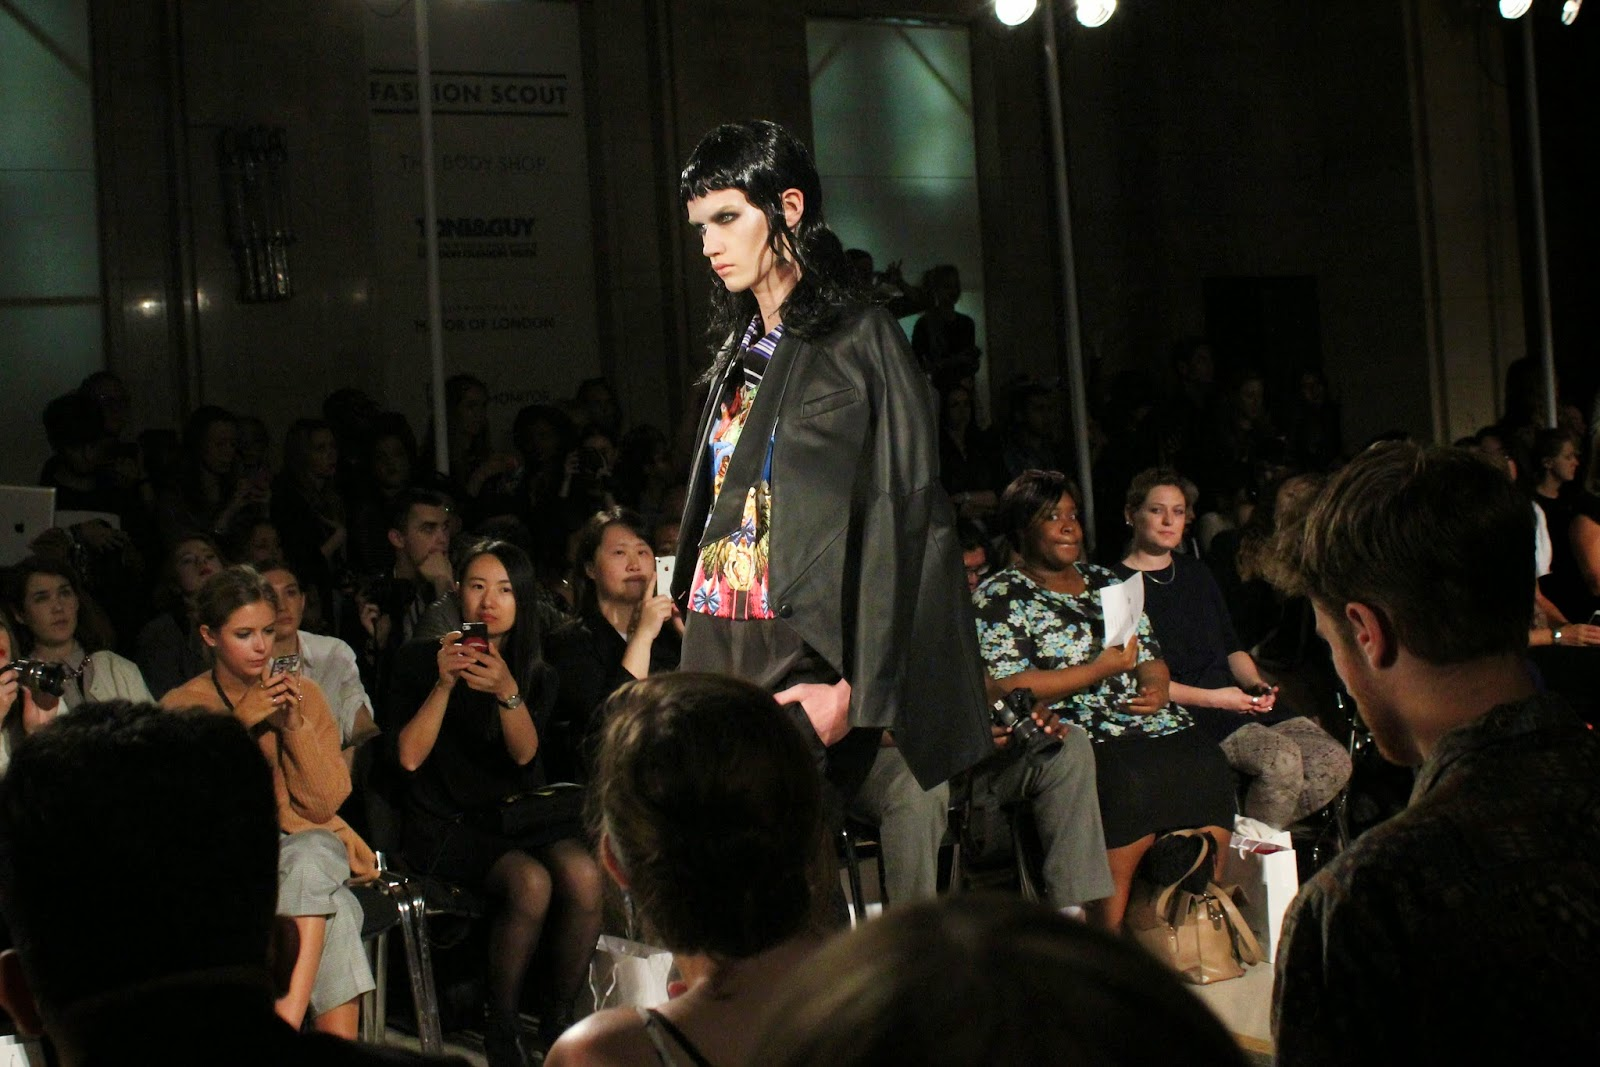 london-fashion-week-2014-lfw-spring-summer-2015-blogger-fashion-Dora-Abodi-catwalk-models-freemasons hall-fashion-scout-dress-blazer